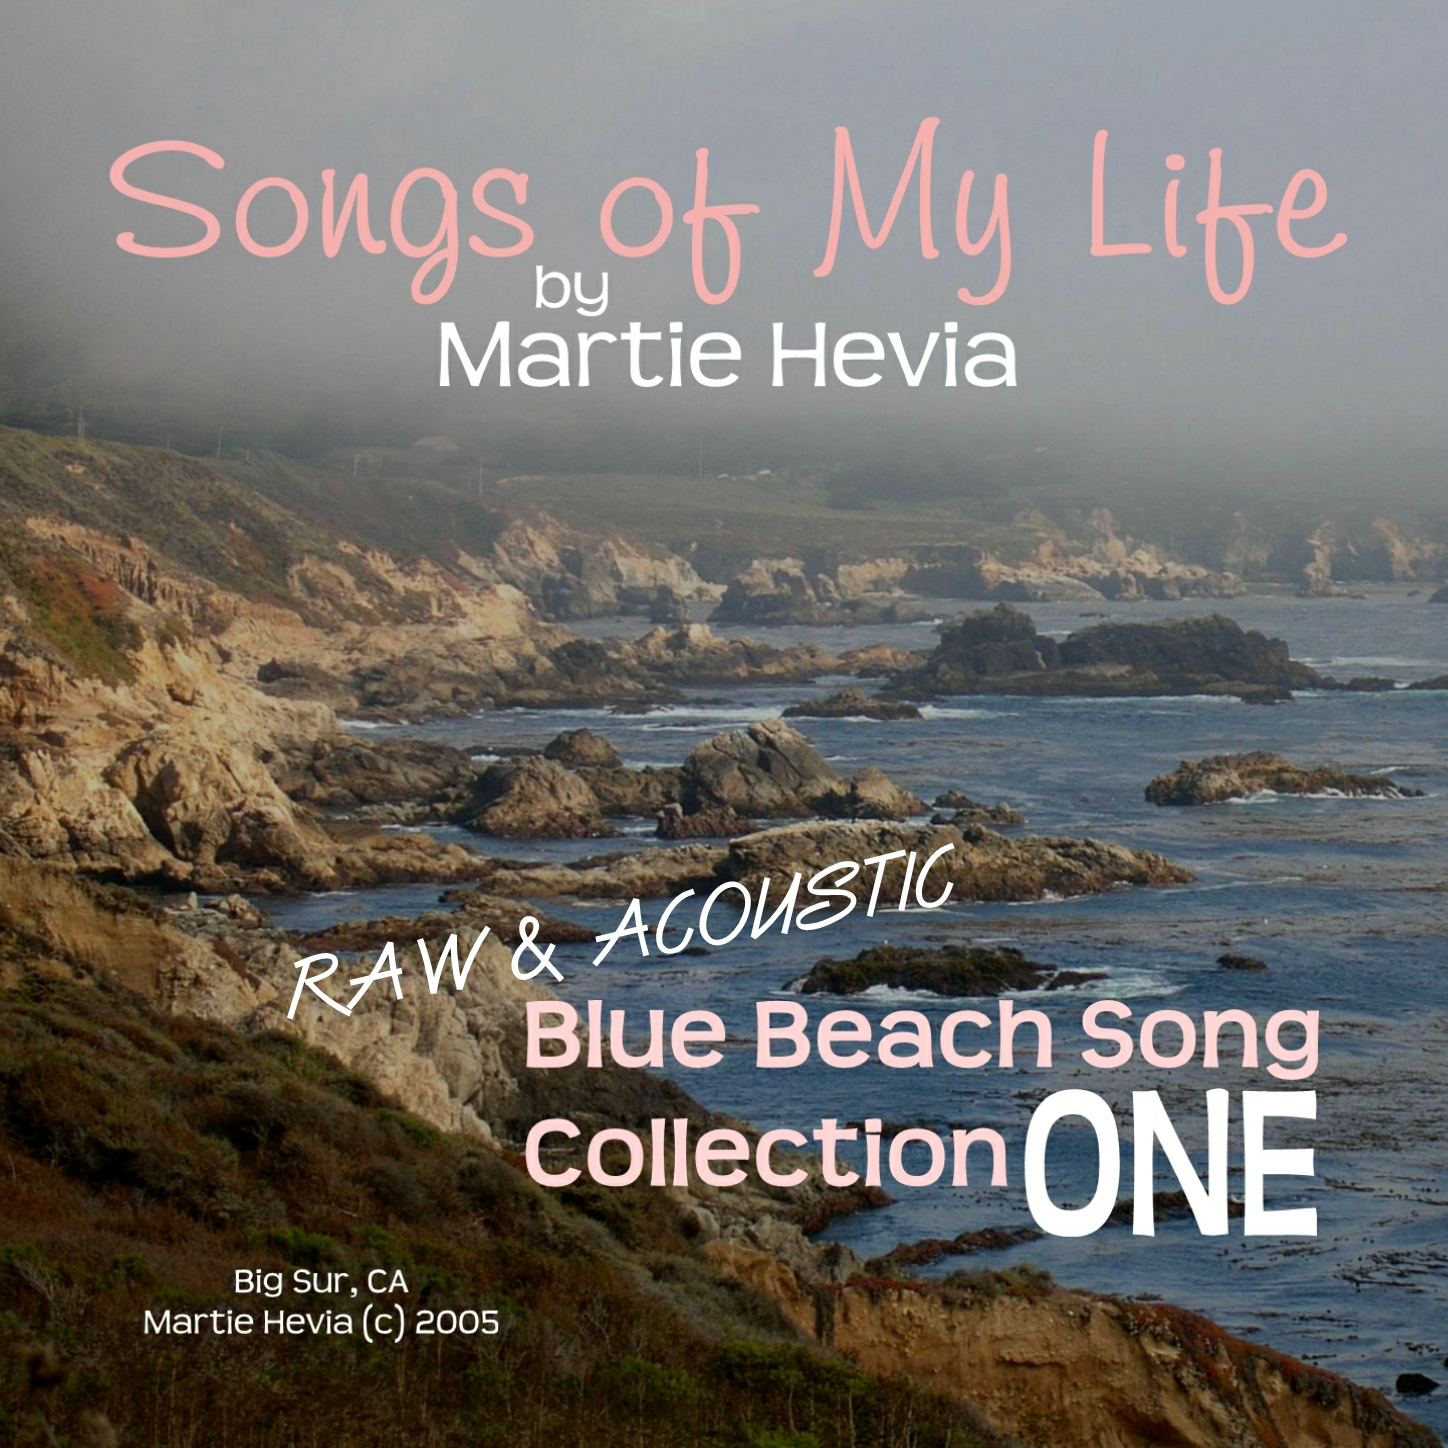 CD/MP3 Cover Art for Blue Beach Song Collection: ONE | Songs of My